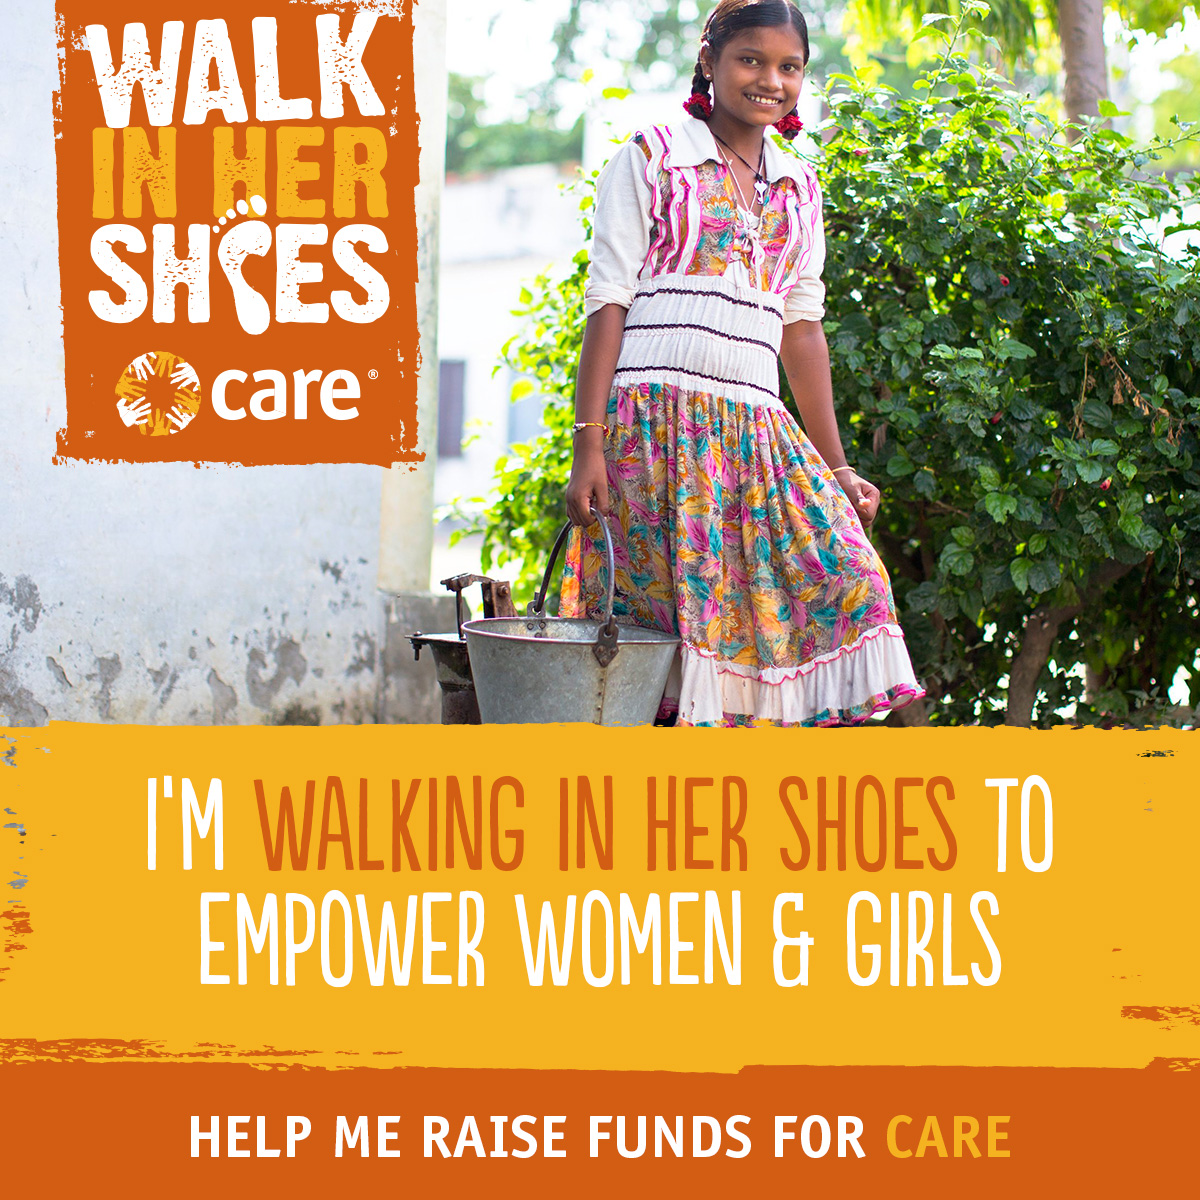 I'm walking in her shoes to empower women and girls